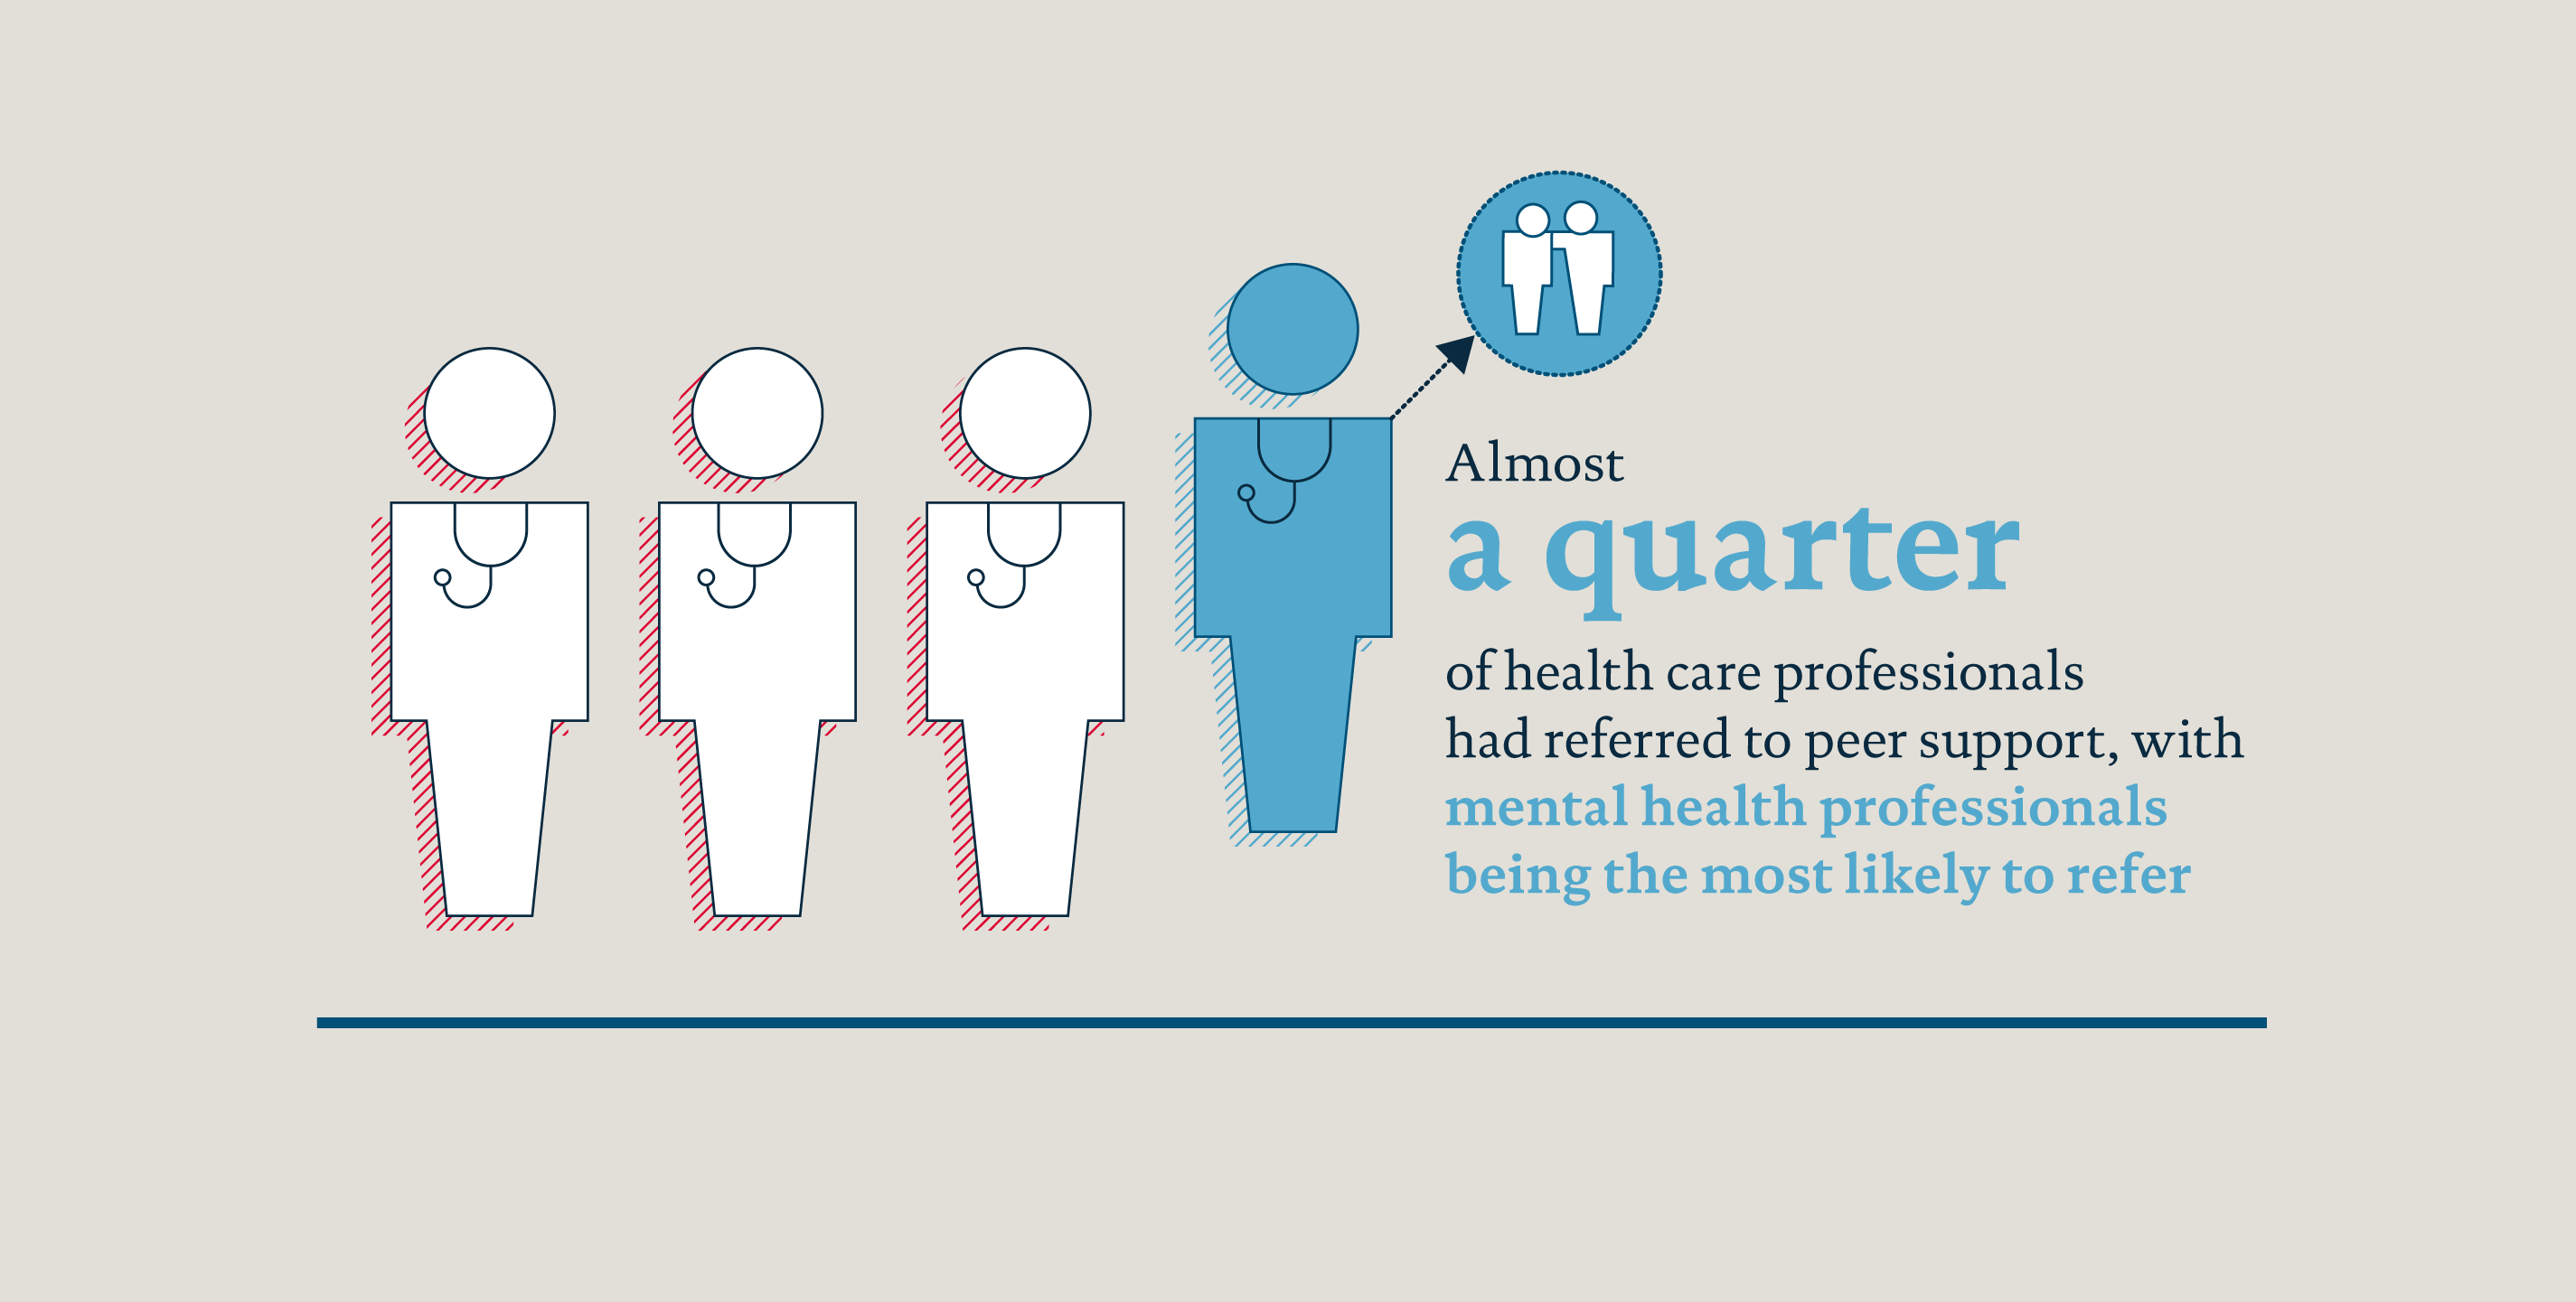 Infographic from peer support survey showing a quarter of health care professionals who had referred to peer support